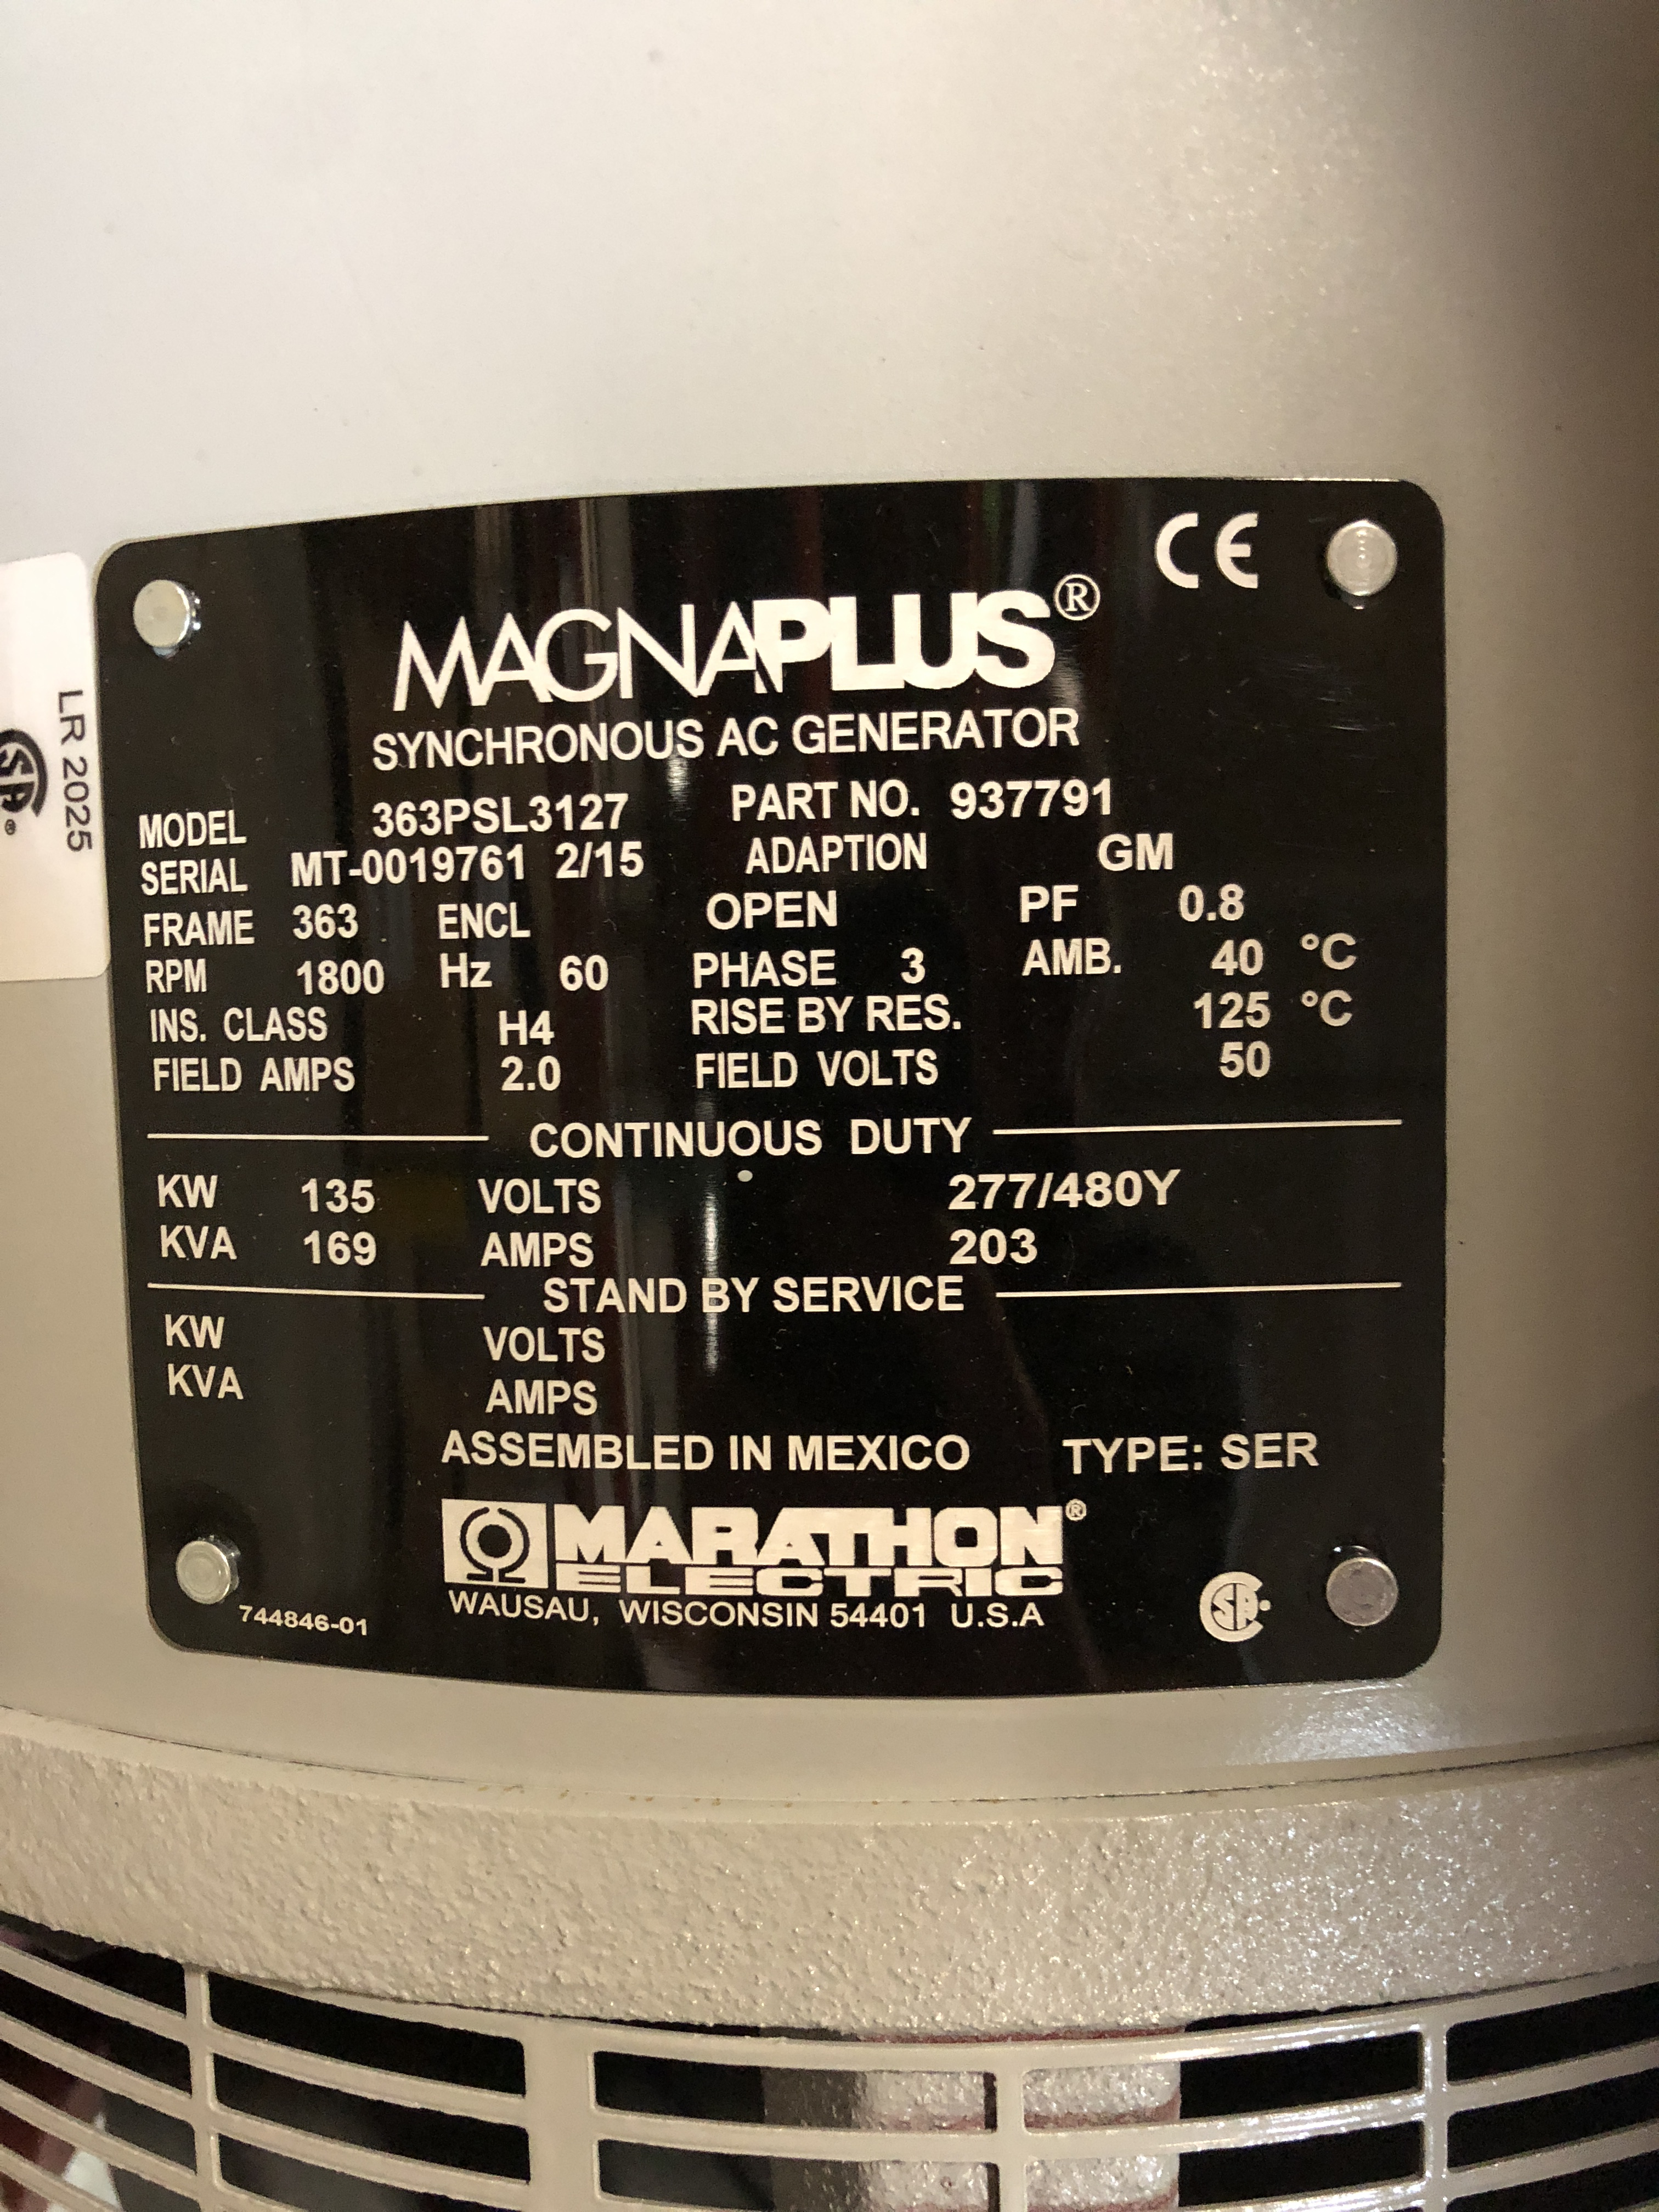 Lot 5 - MAGNAPLUS SYNCHRONOUS GENERATOR MODEL-363PSL3127; 135KW/480V/4POLE/3PH/60HZ/1800RPM/363FRAME